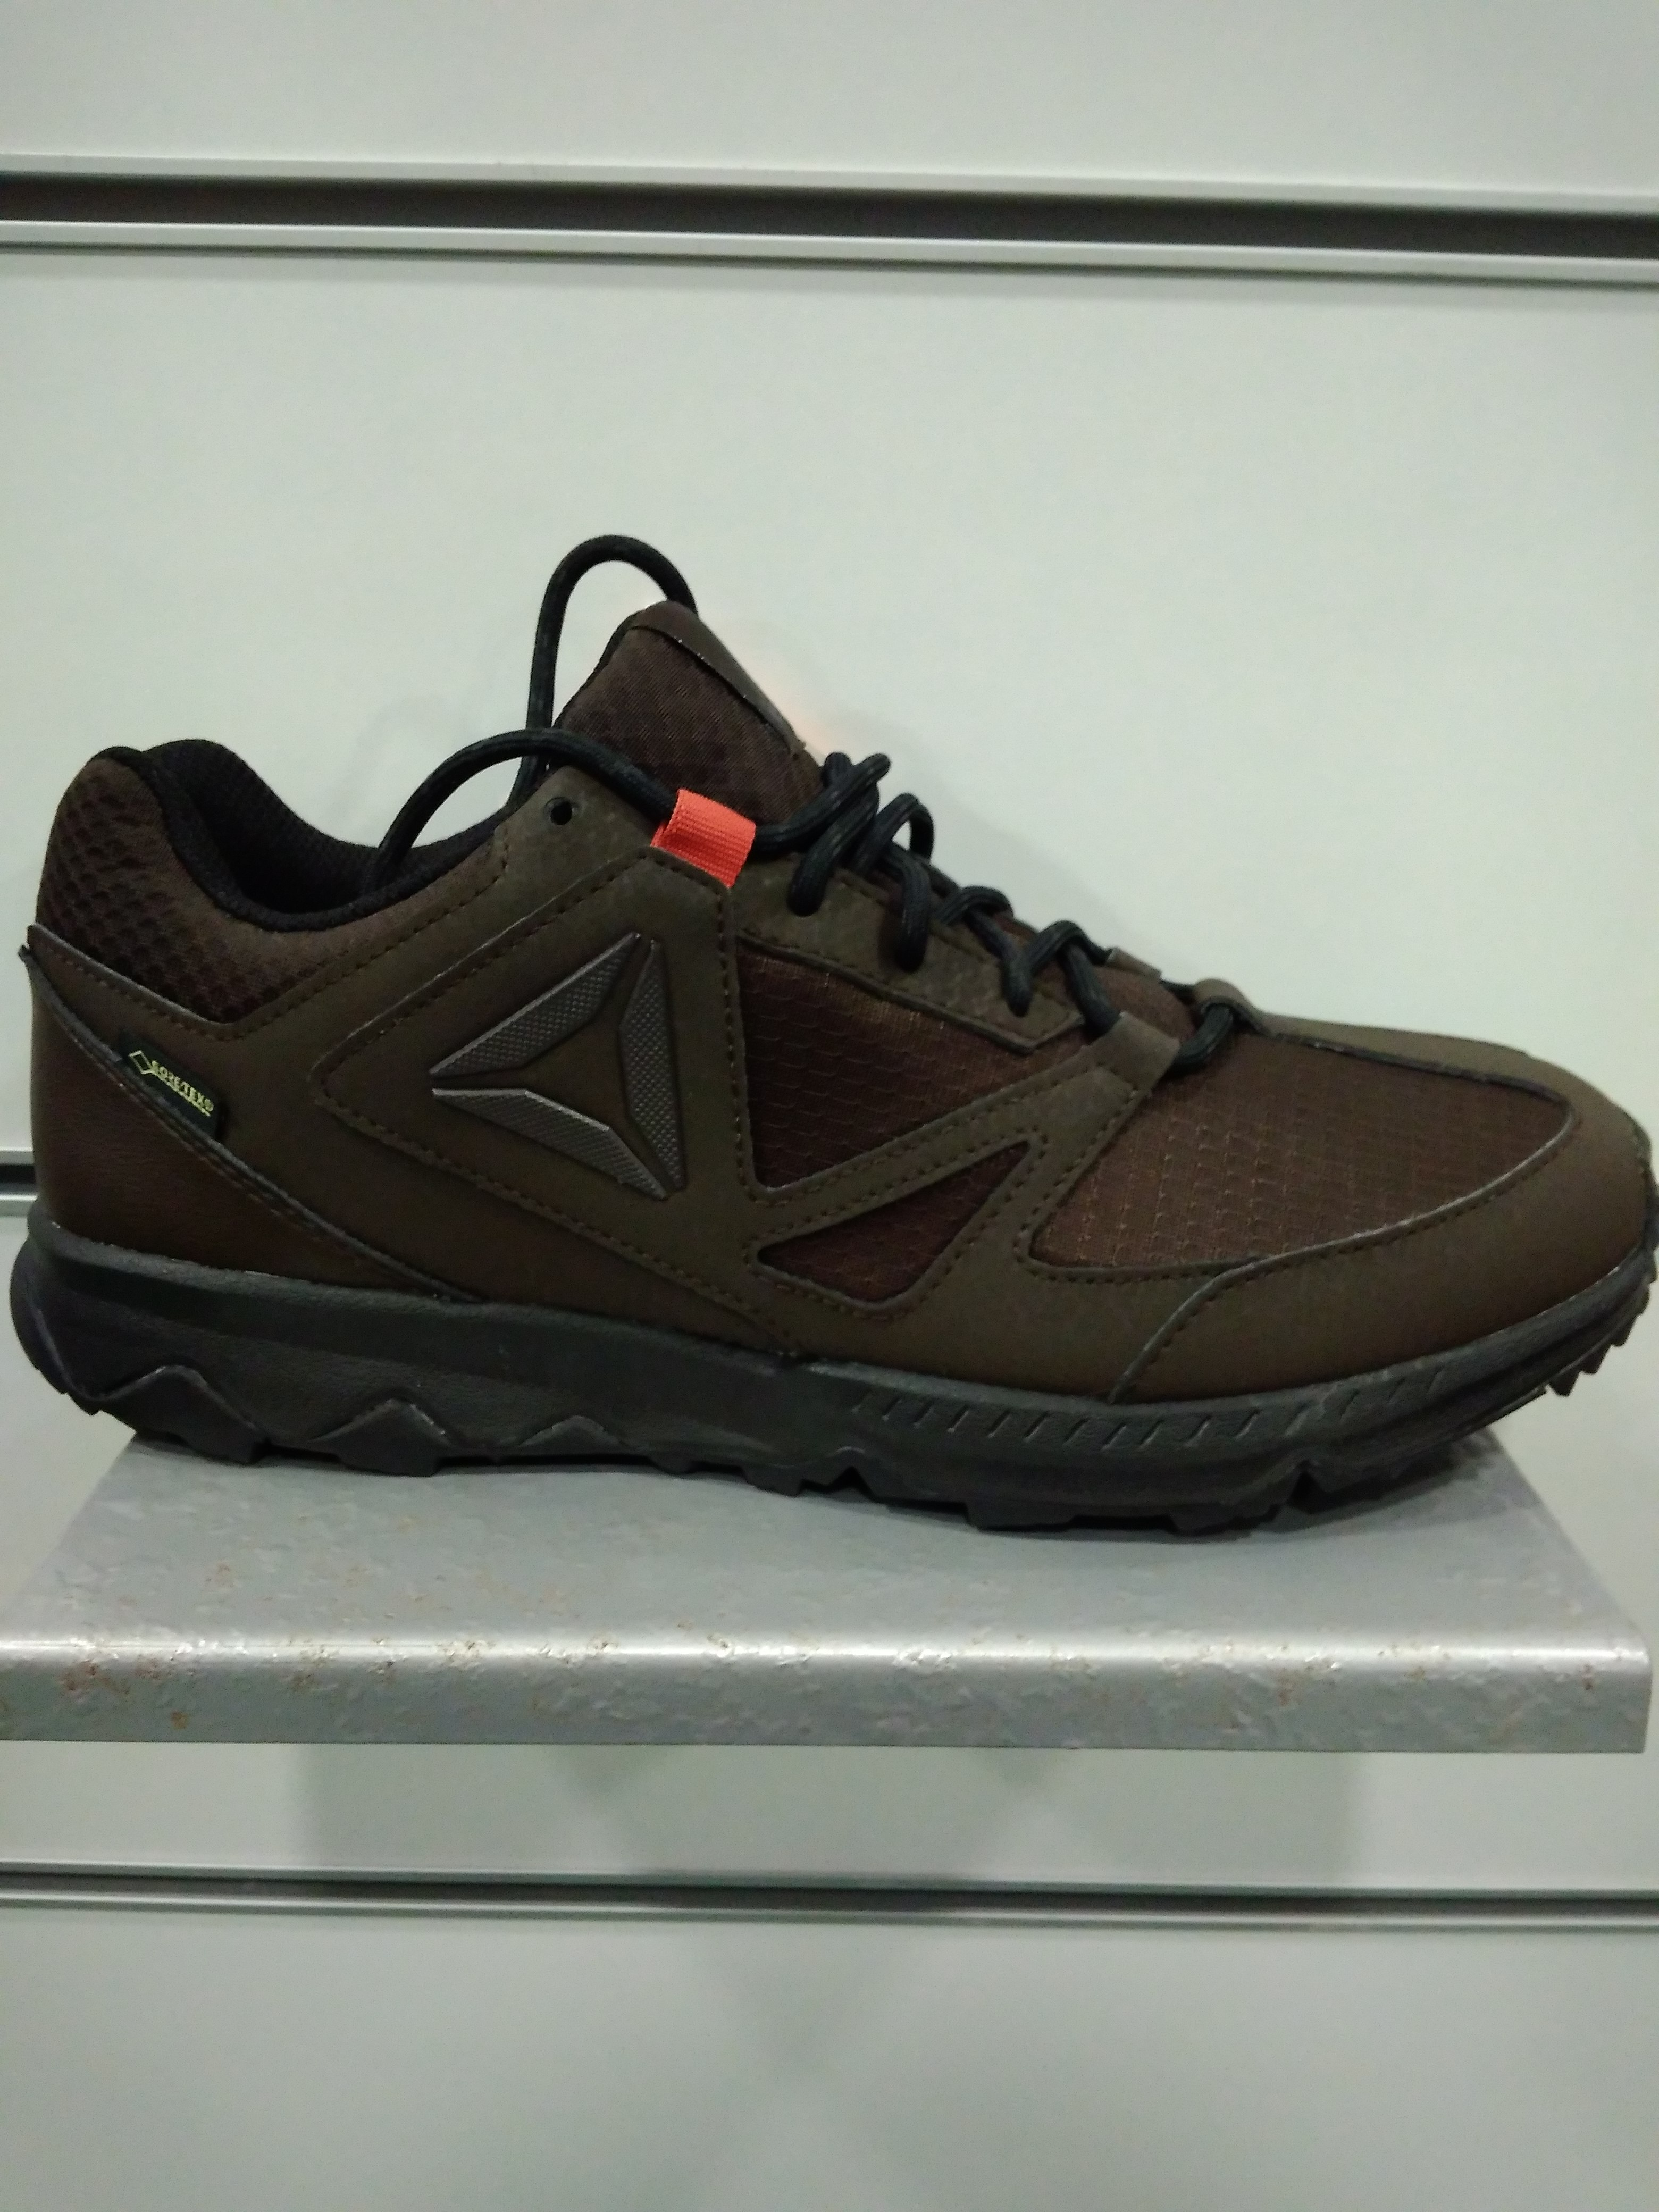 SKYE PEAK GTX 5.0 BLK/DRK BROWN/COAL/A